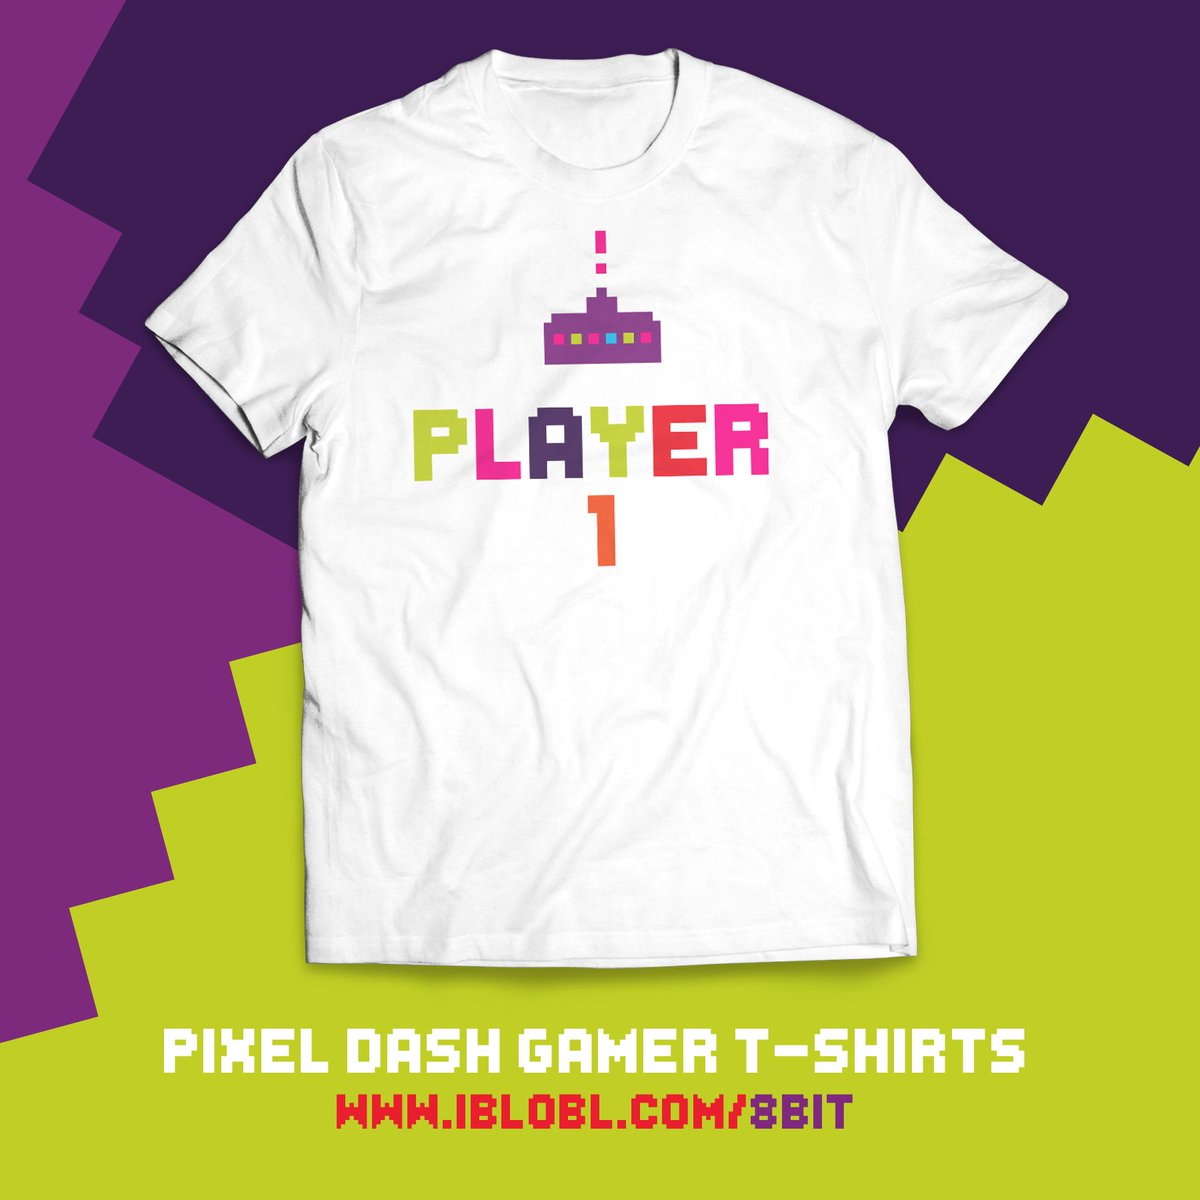 Who&#39;s your #player2?   http:// bit.ly/2yY1RM6  &nbsp;    #Pixel #Dash #tshirts are on sale #now! #TShirtDay #tshirt #t-Shirt #tShirts #t-shirts #gamers #player #redbubble #shop #onsale #buy #store #player1 #retro #pixels #pixelated #design #arcade #game #SundayMorning<br>http://pic.twitter.com/3lsZimY9f0